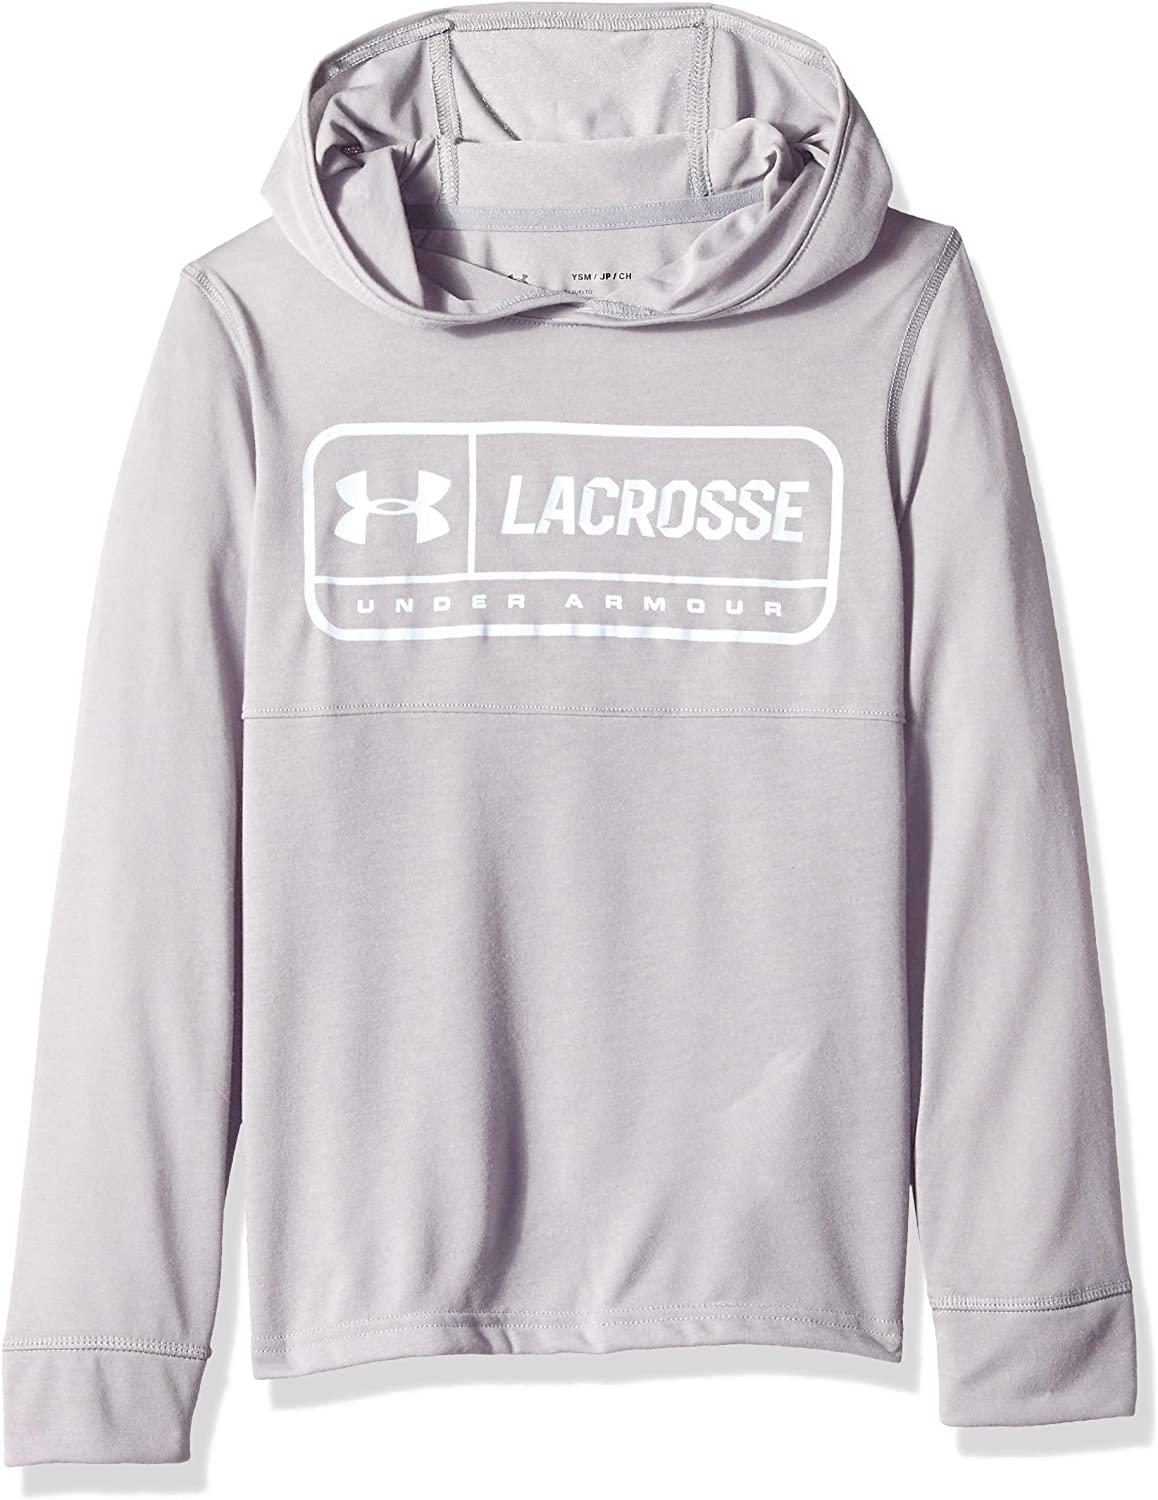 Under Armour Boys Pull Over Hoody